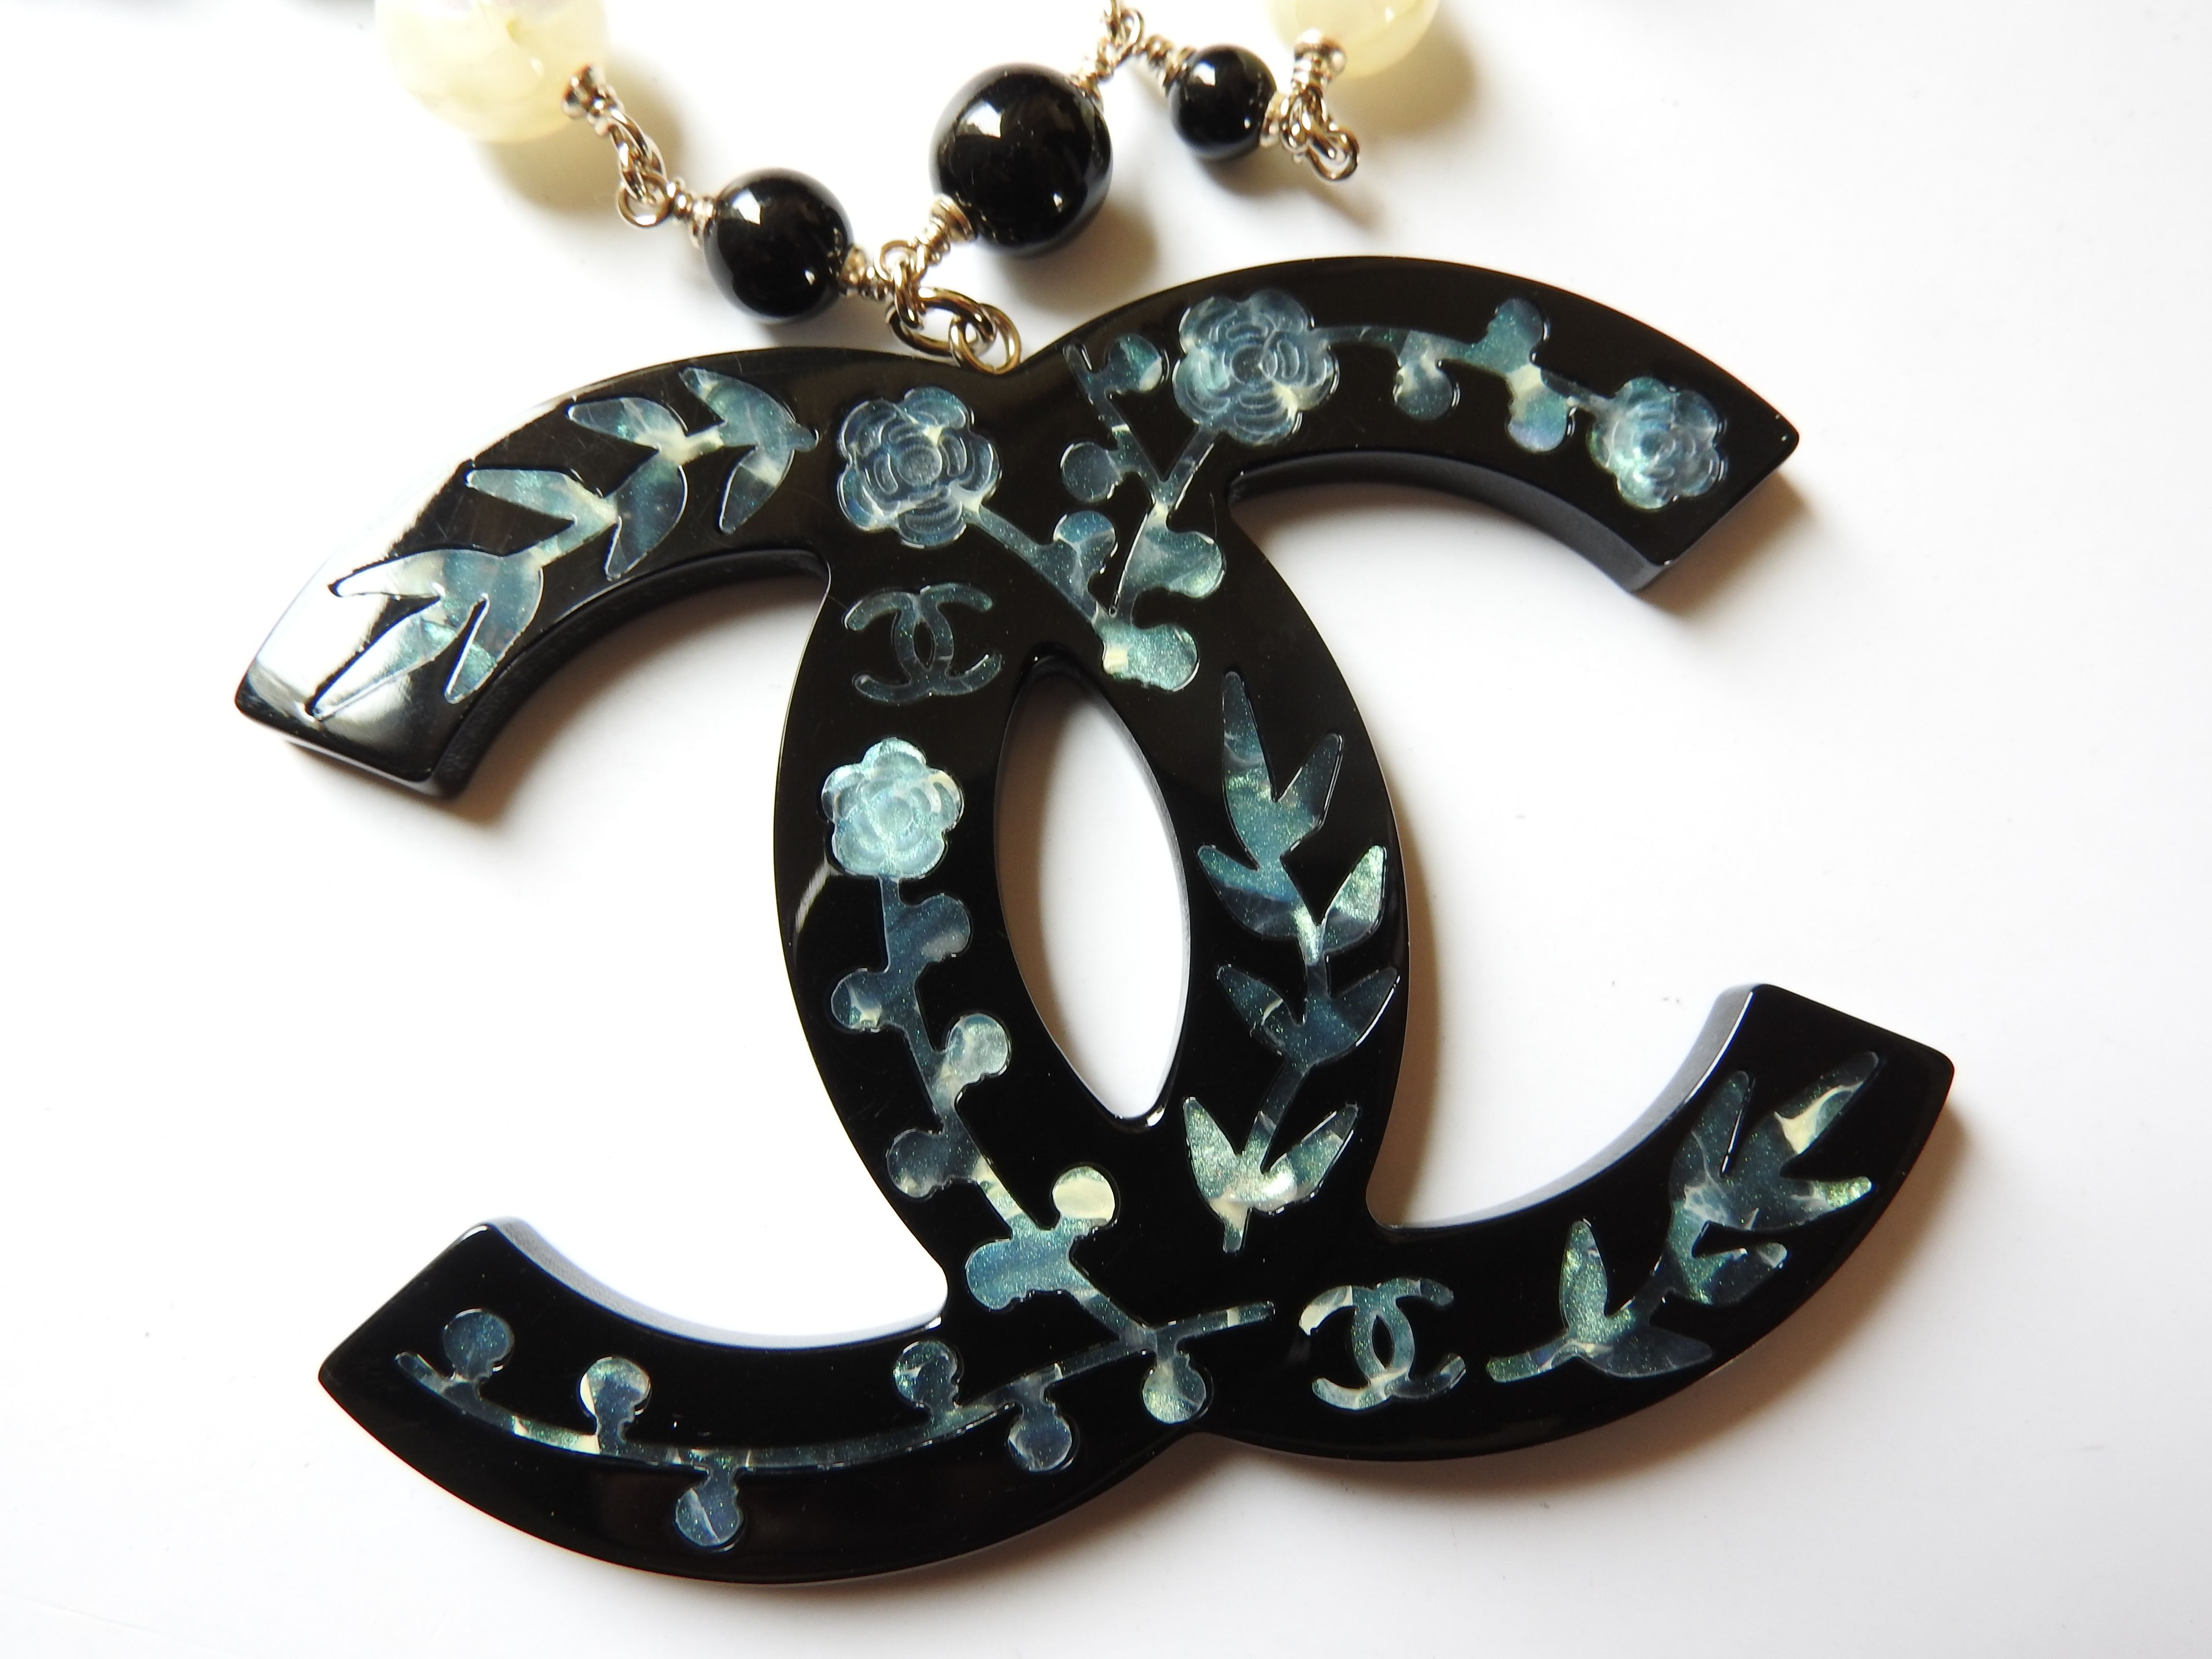 Chanel Paris-Shanghai oversized resin mother of pearl like liquid inlay glass bead necklace . Much beautiful than photo. A collector's piece.